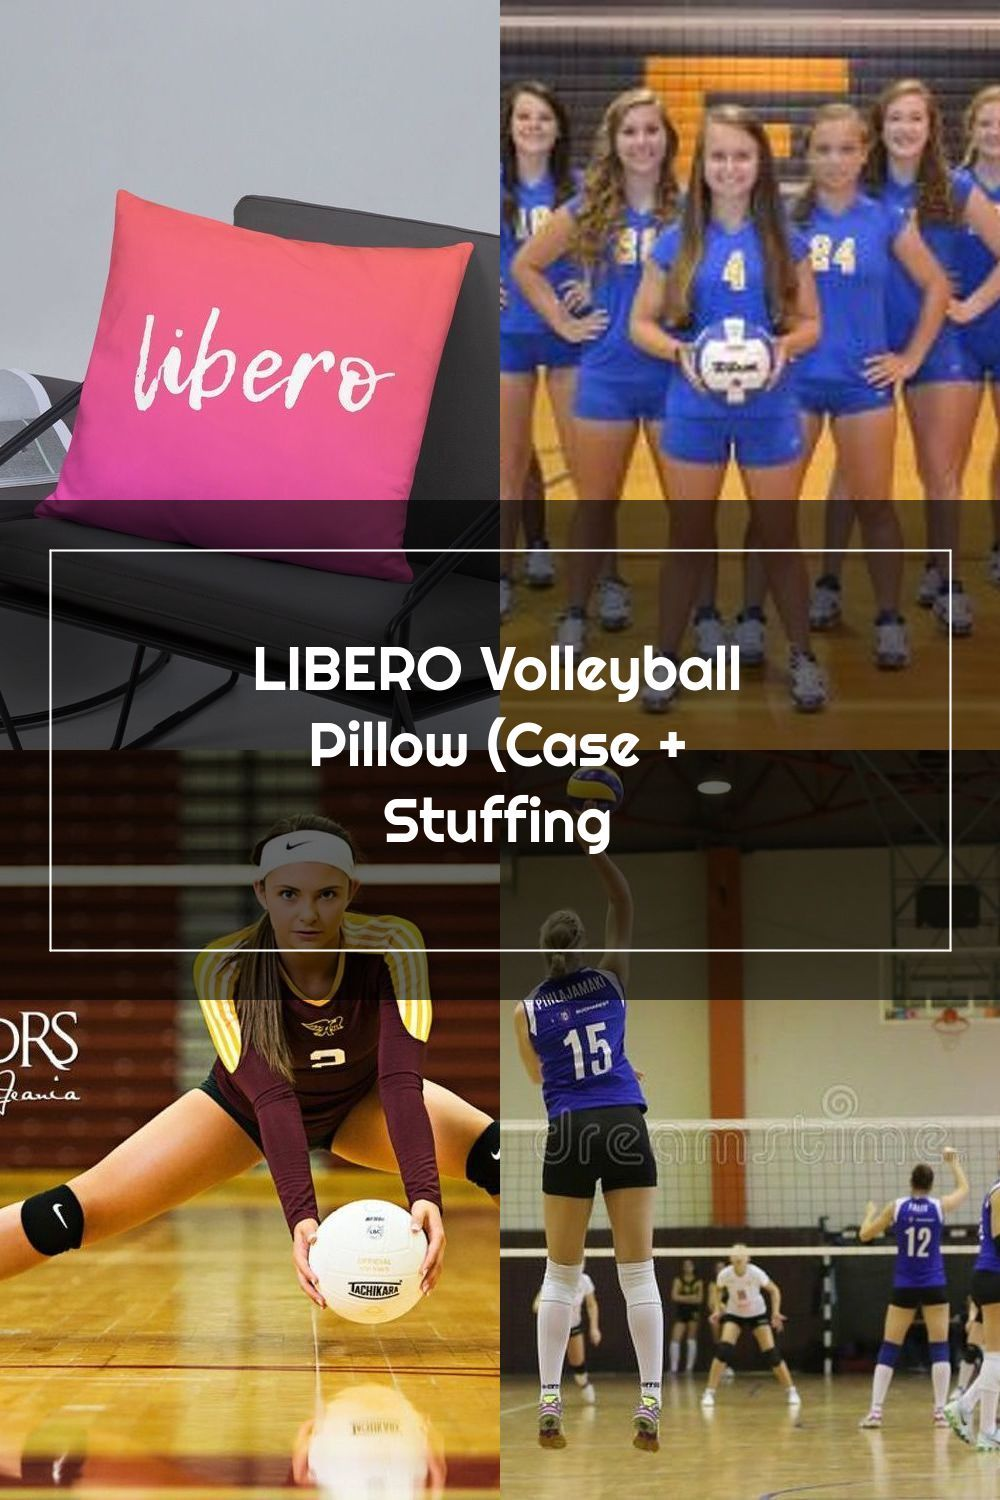 Libero Volleyball Pillow Case Stuffing In 2020 Libero Volleyball Volleyball Pictures Volleyball